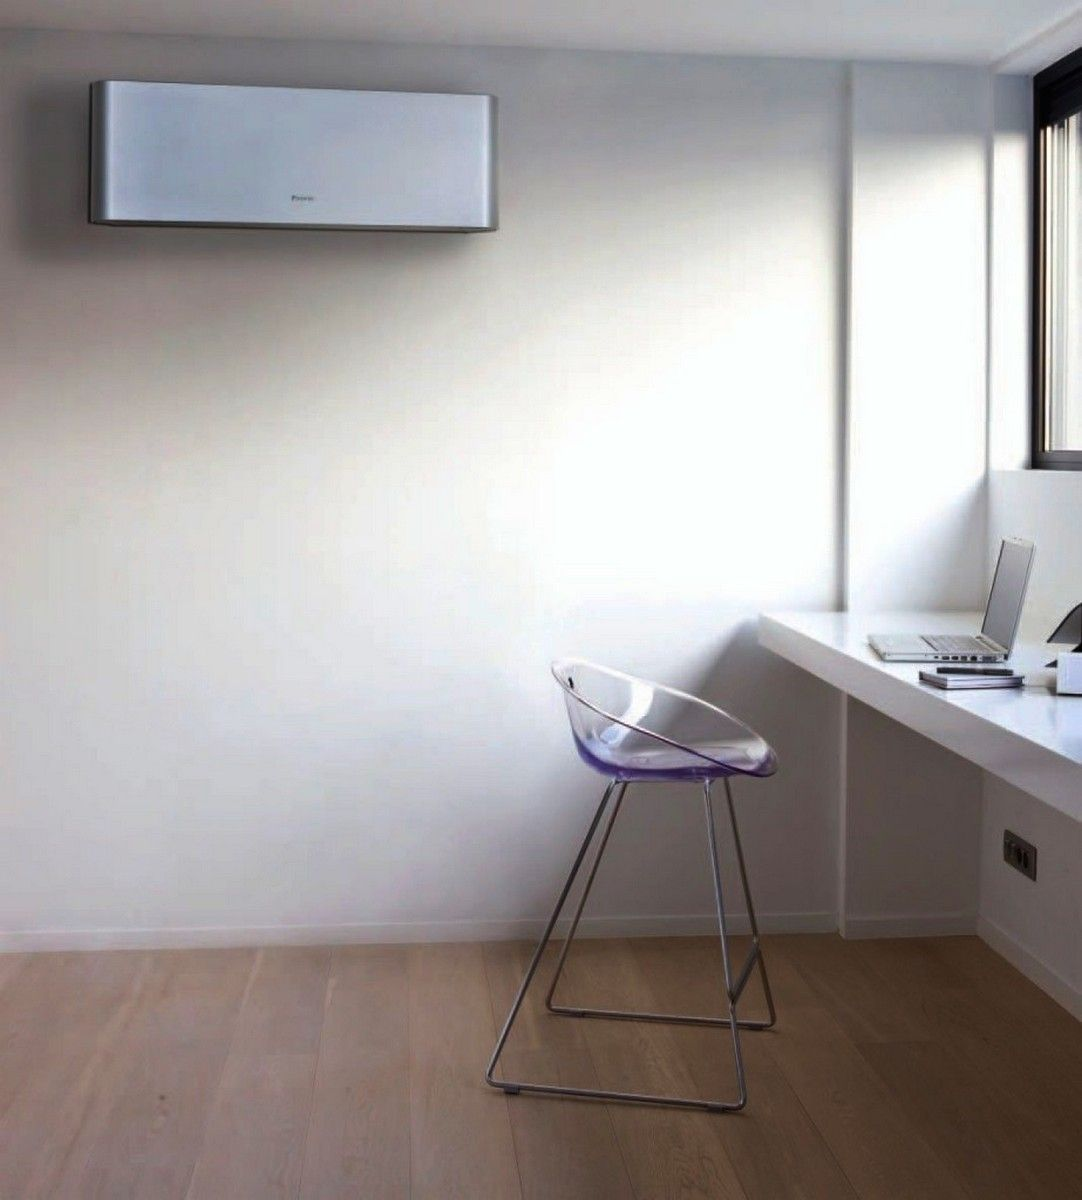 The Panasonic Air Purifier On Room Smallest Air Conditioner